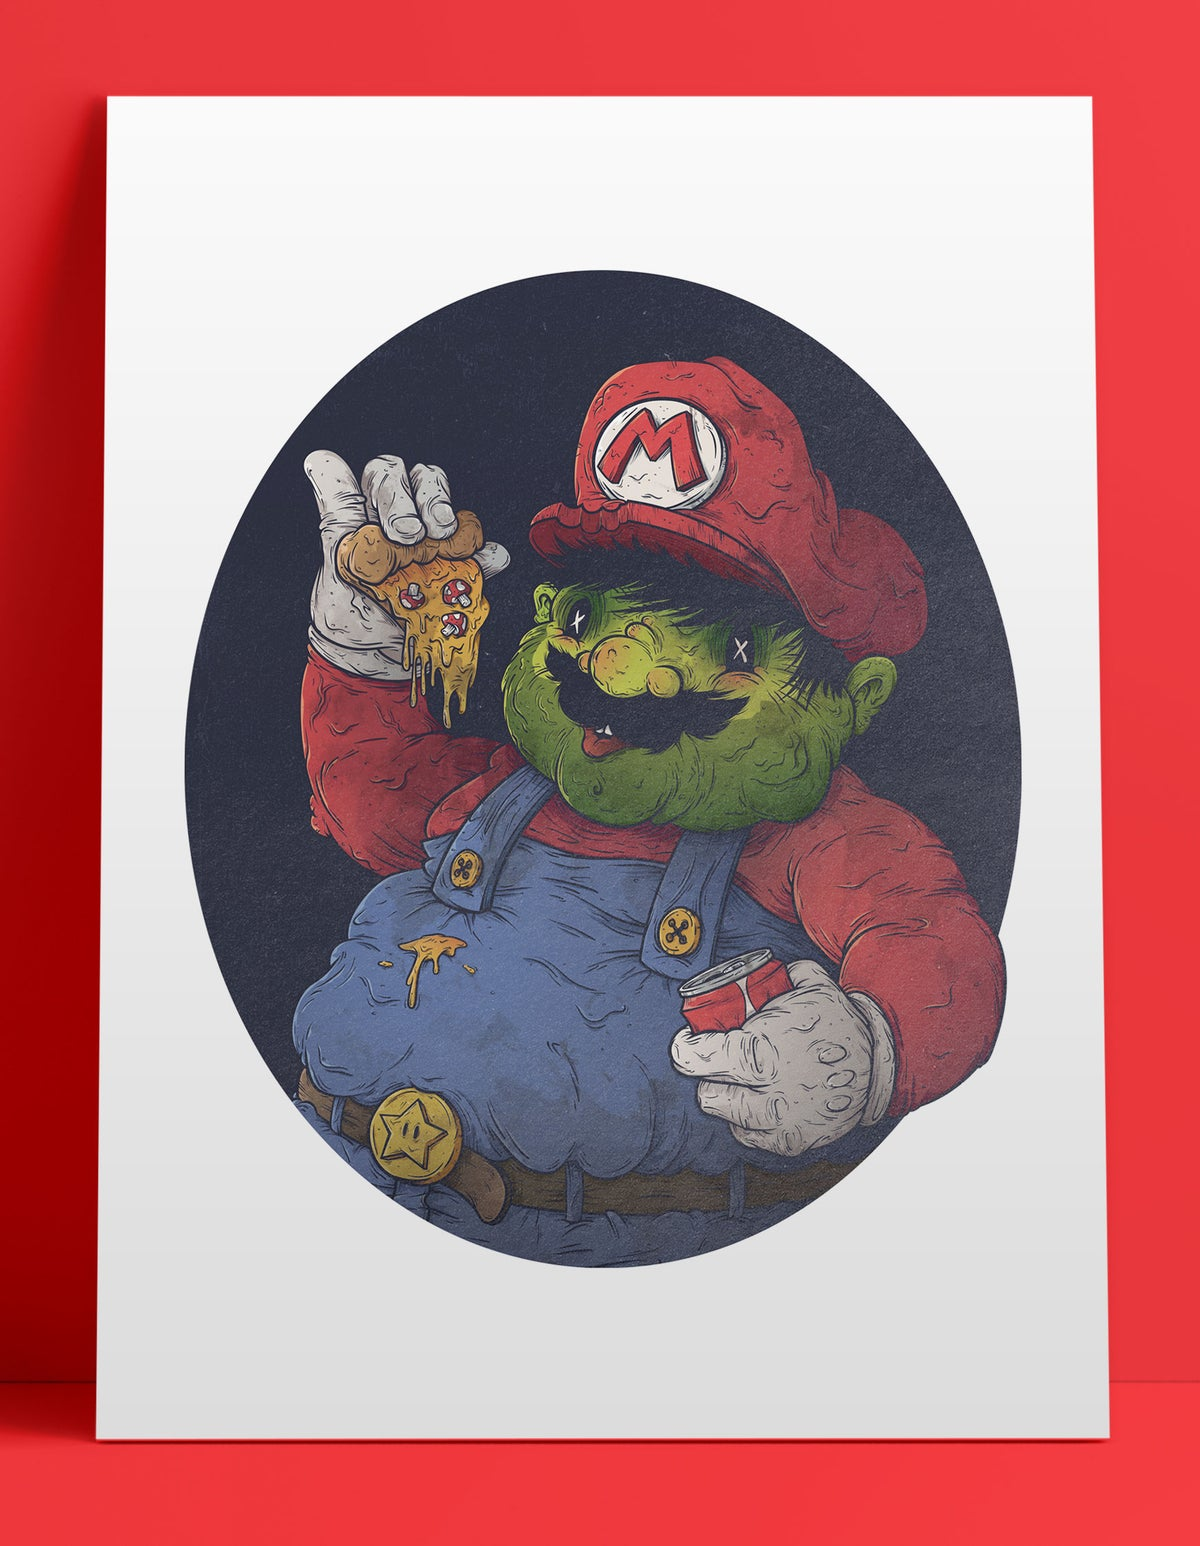 Image of Super Fat Mario